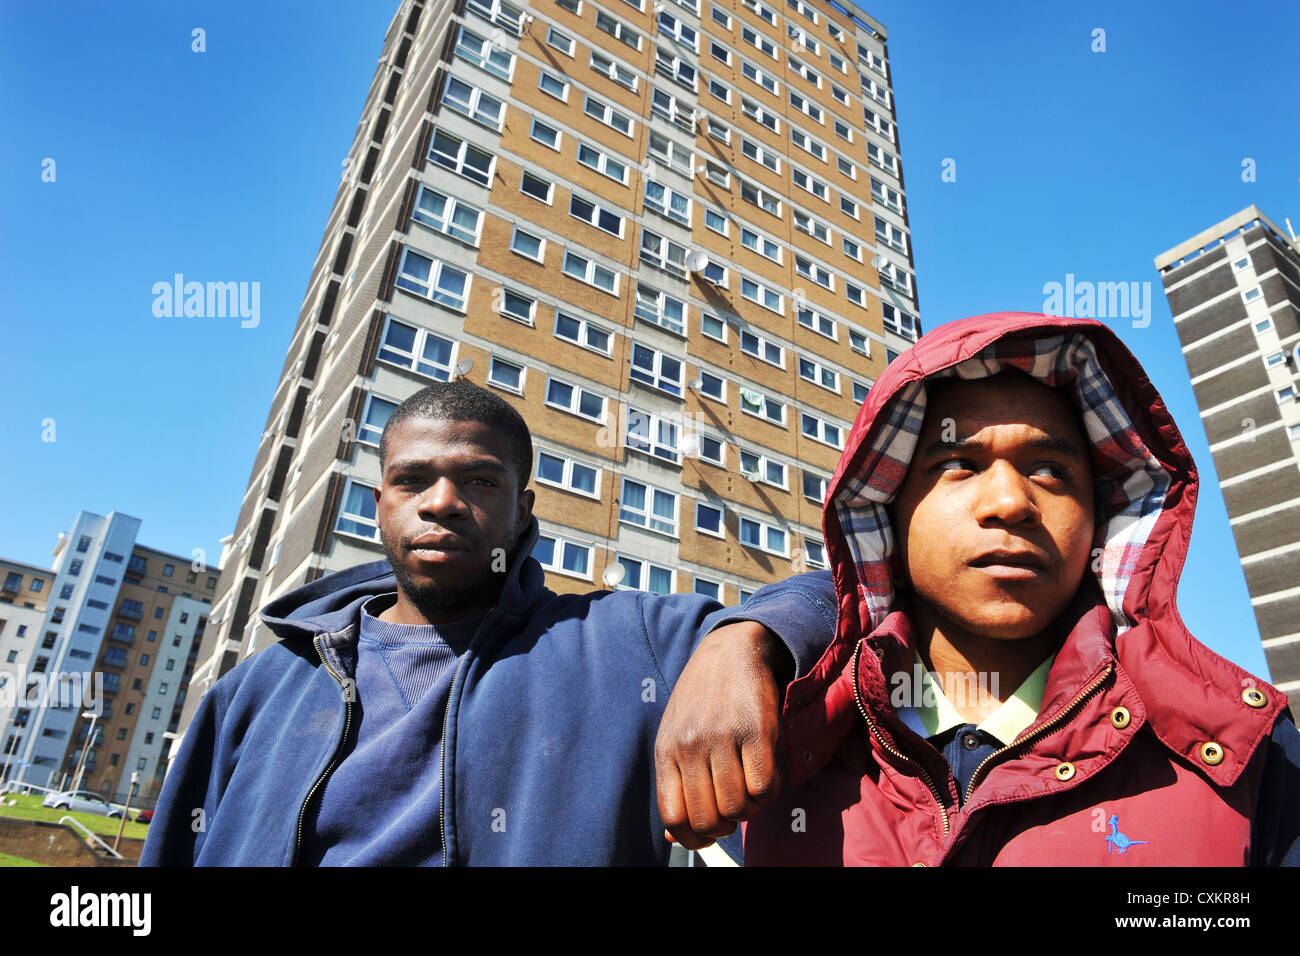 Young Unemployed Youth Leeds UK Stock Photo